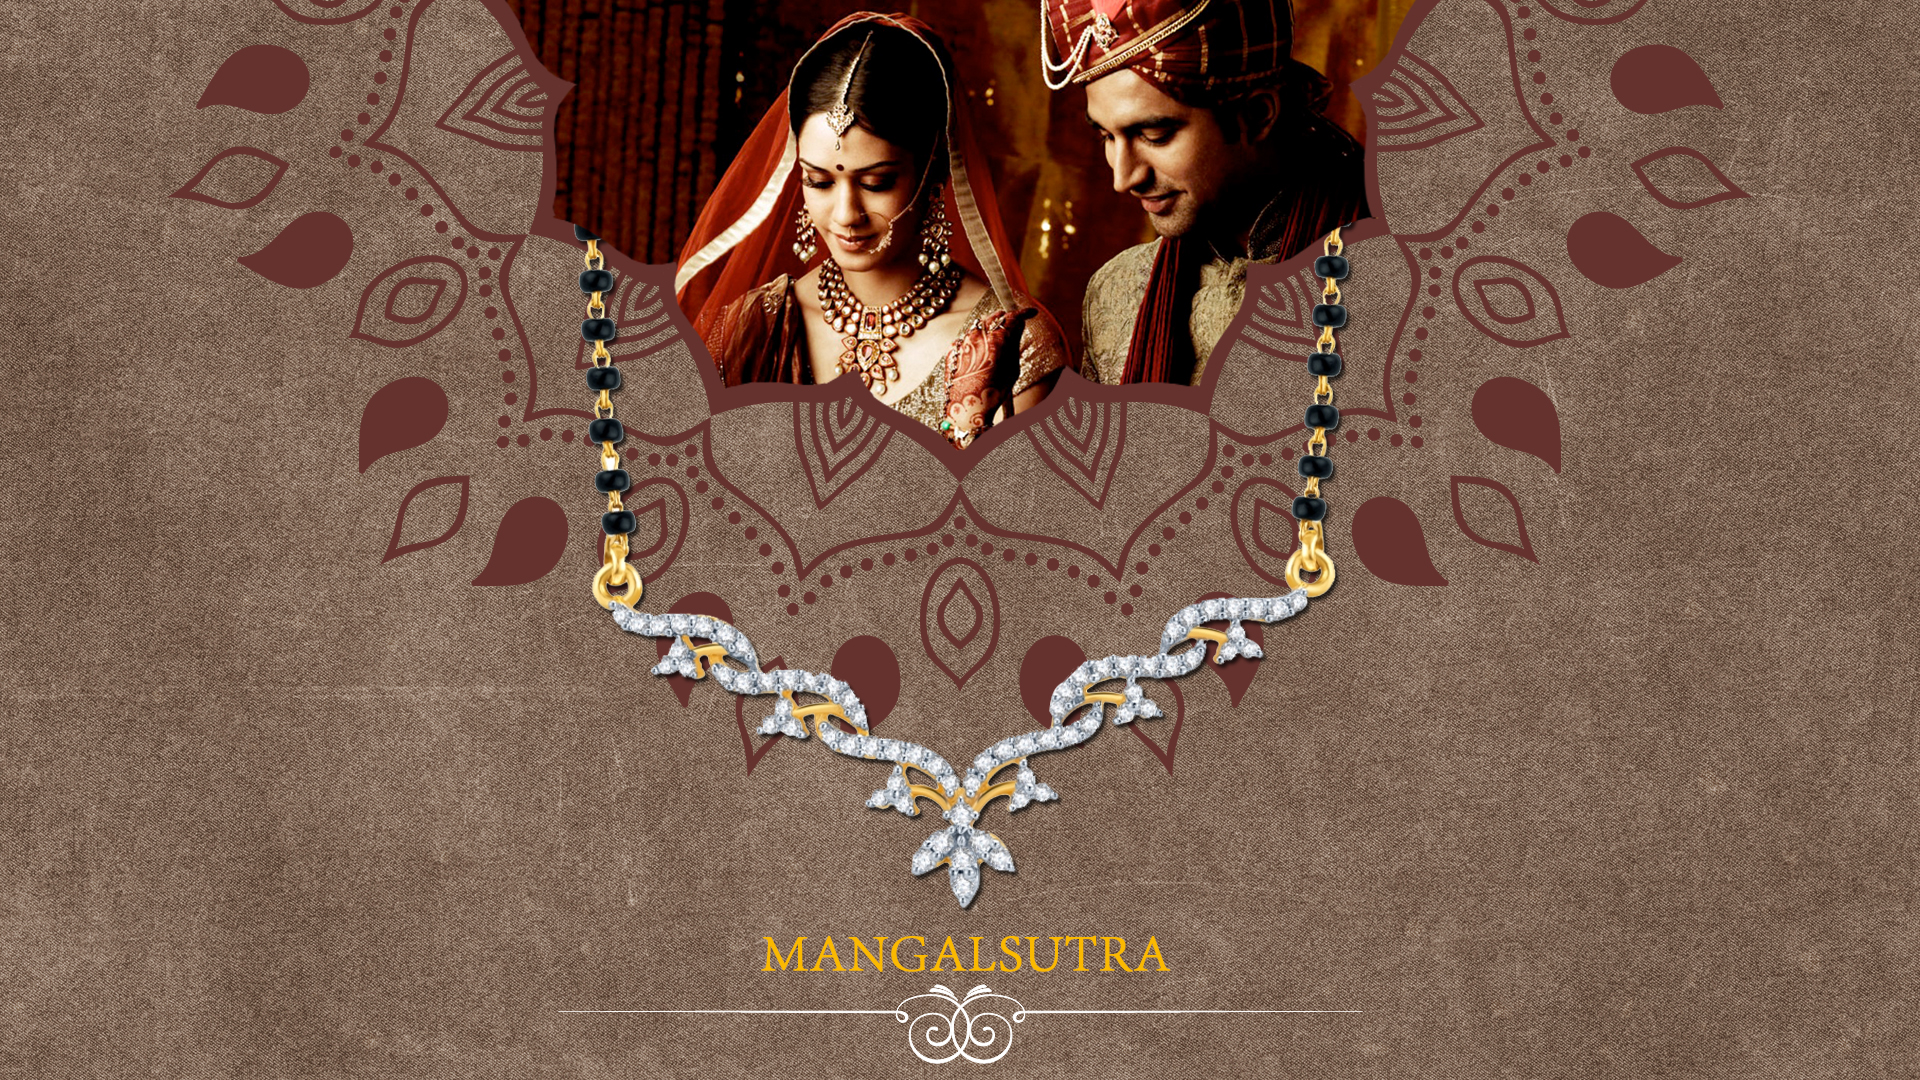 A Mangalsutra Is A Gift From The Groom To His Bride